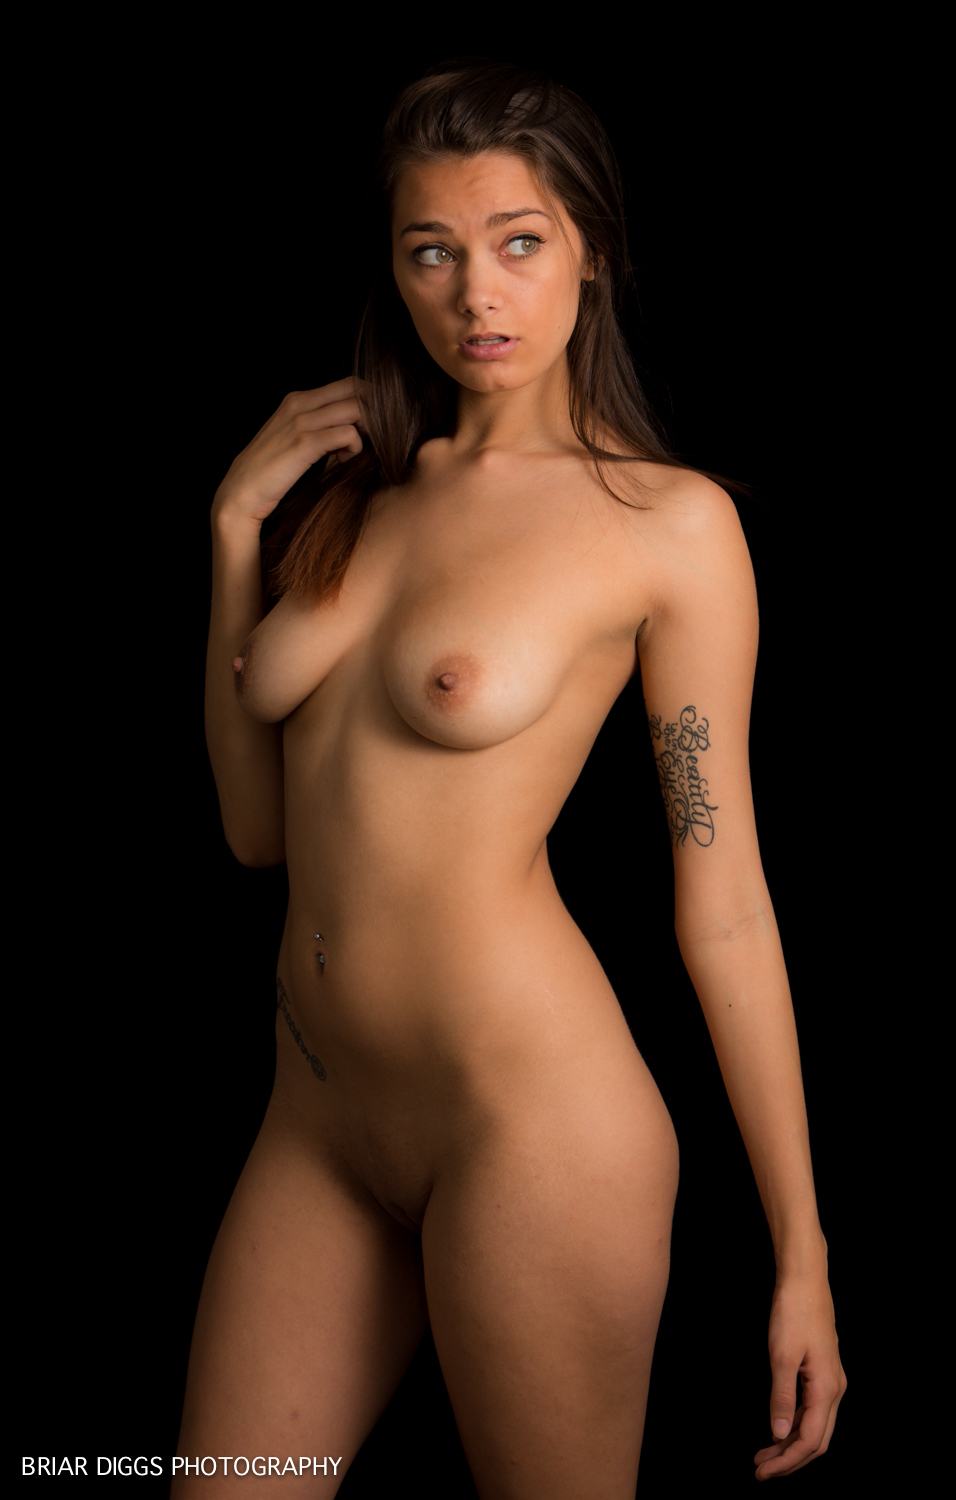 MODELS ART NUDES (COLOR)-18.jpg